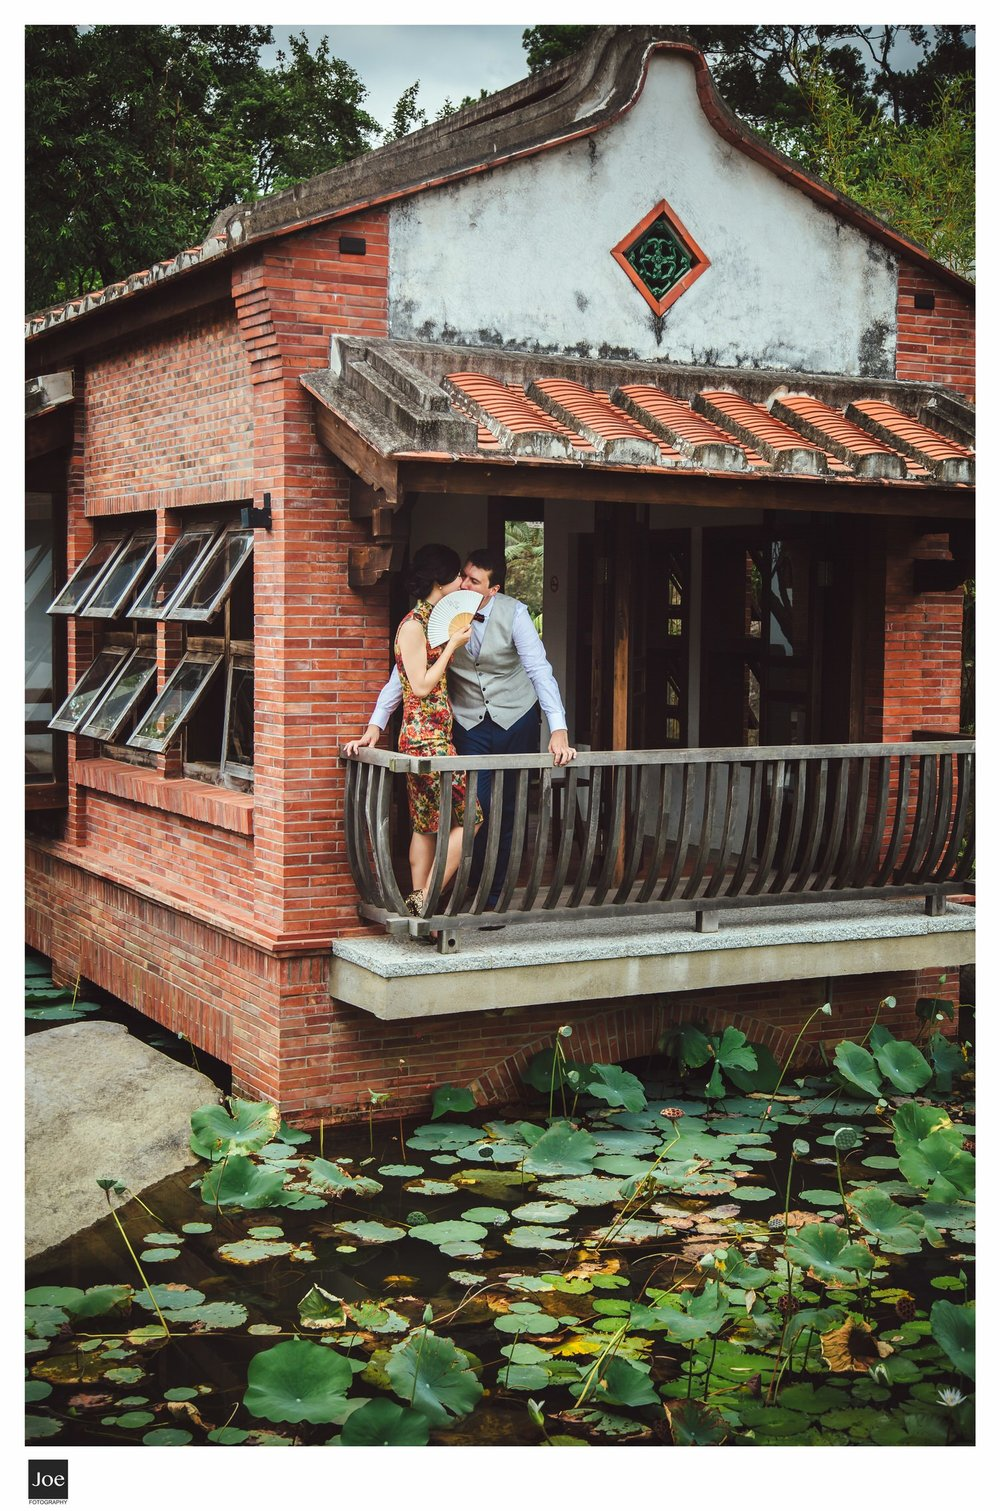 joe-fotography-pre-wedding-kay-jeff-024.jpg